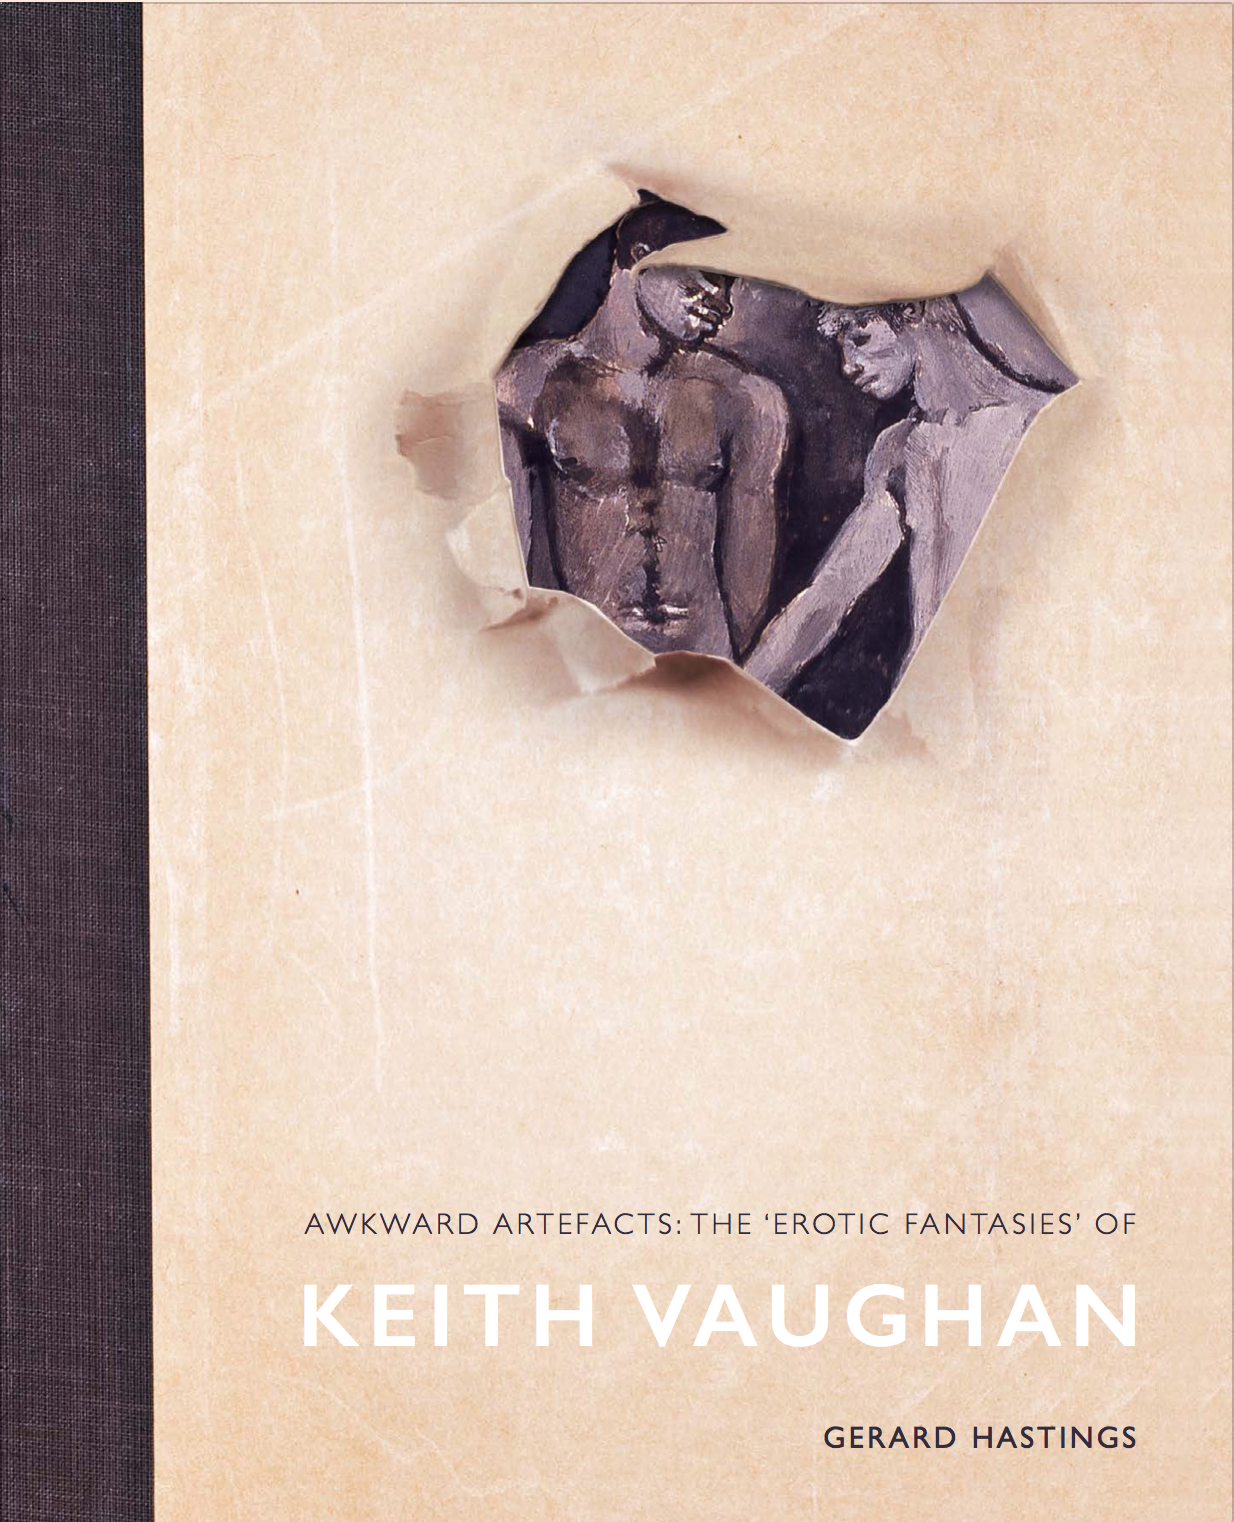 Awkward Artefacts: The 'Erotic Fantasies' of Keith Vaughan